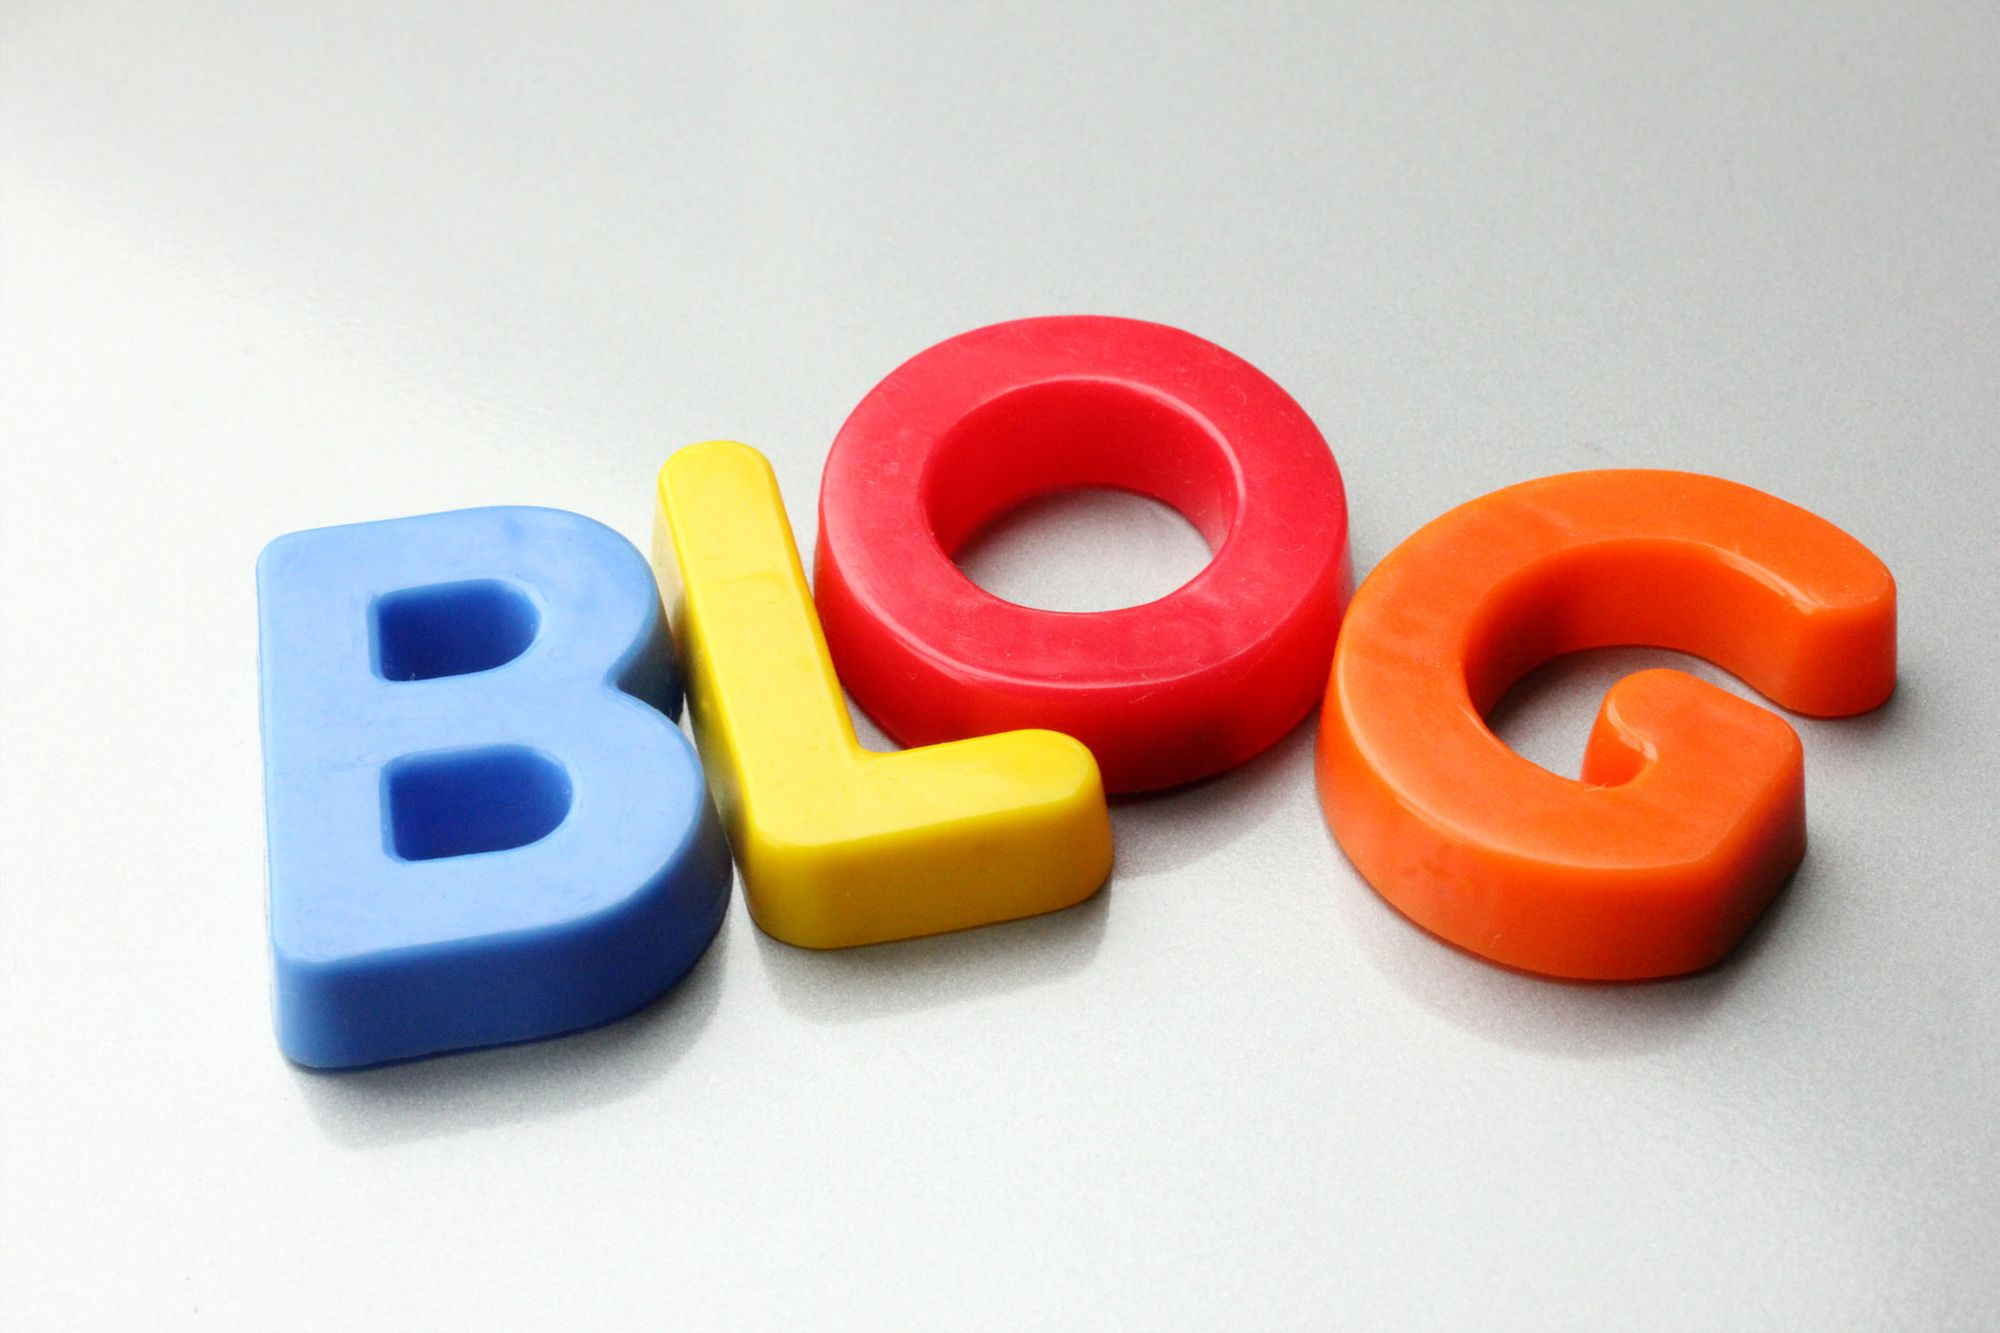 How to get started with blogging